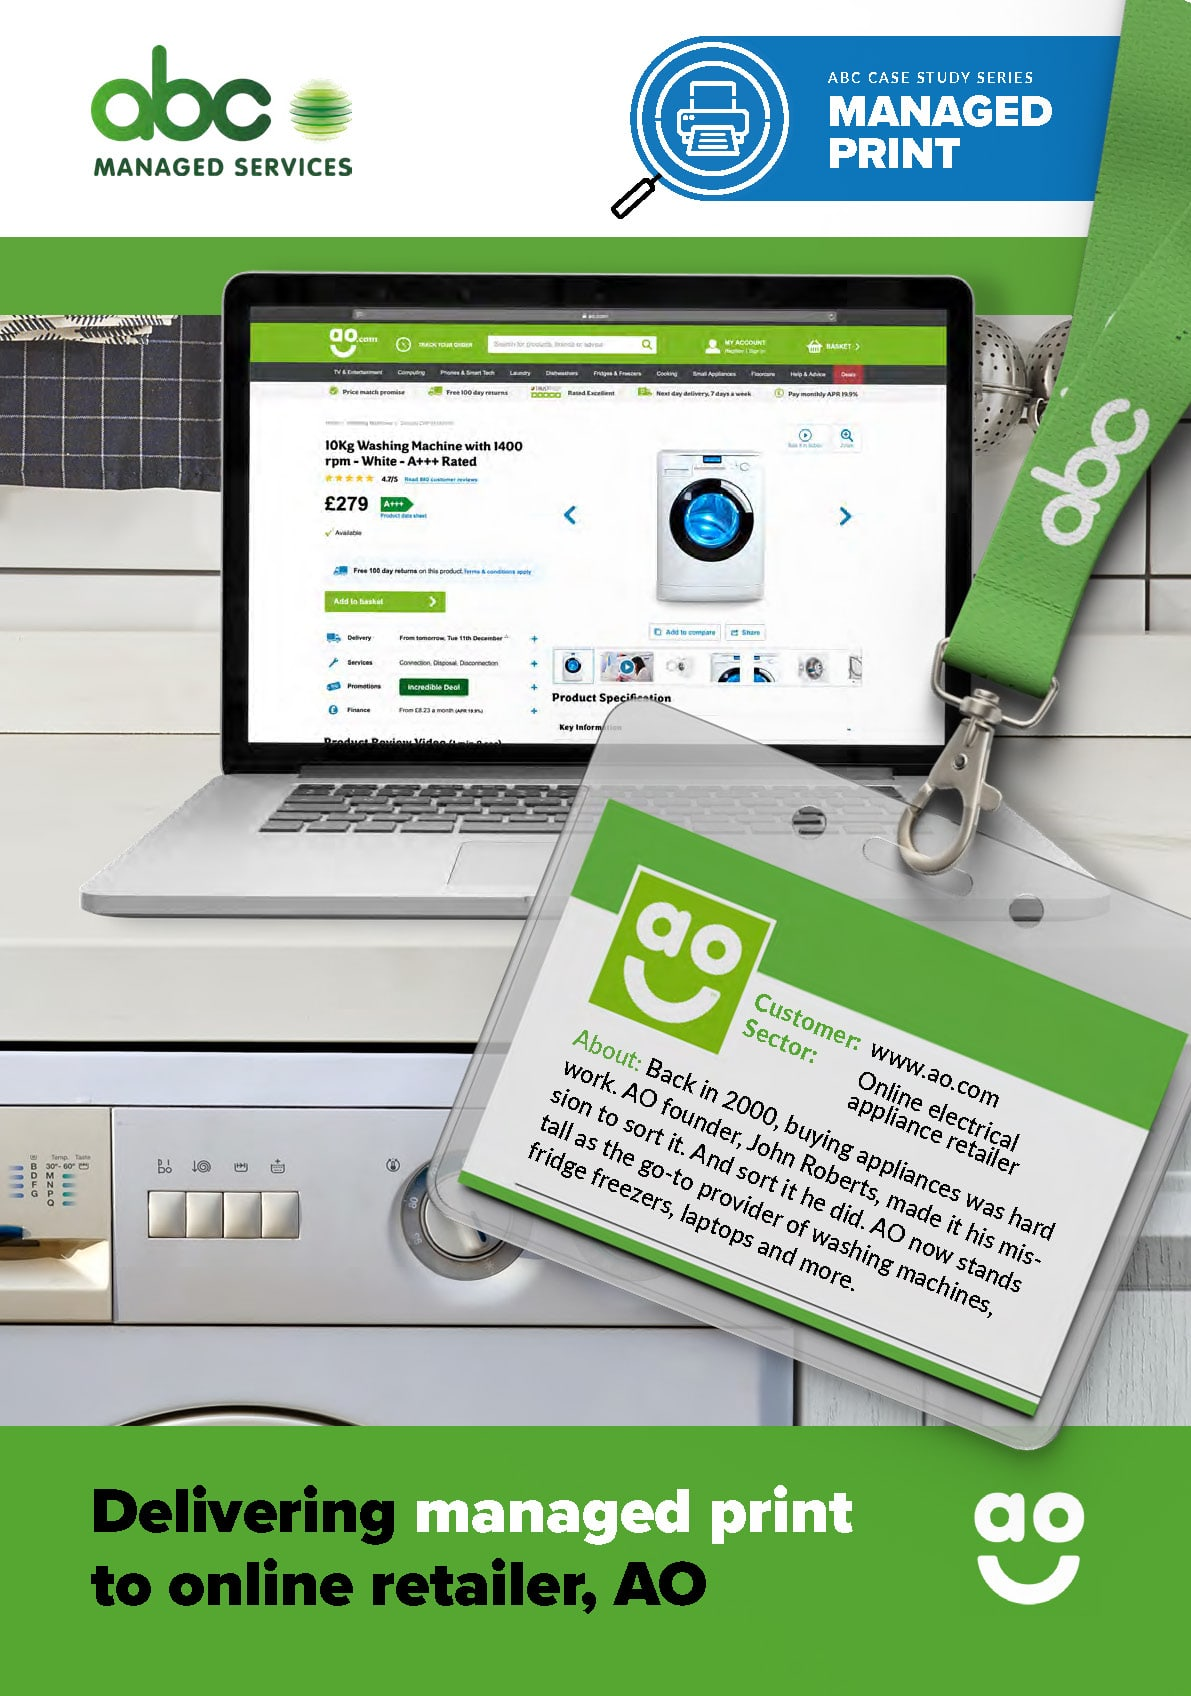 Case study: delivering managed print to online retailer, AO